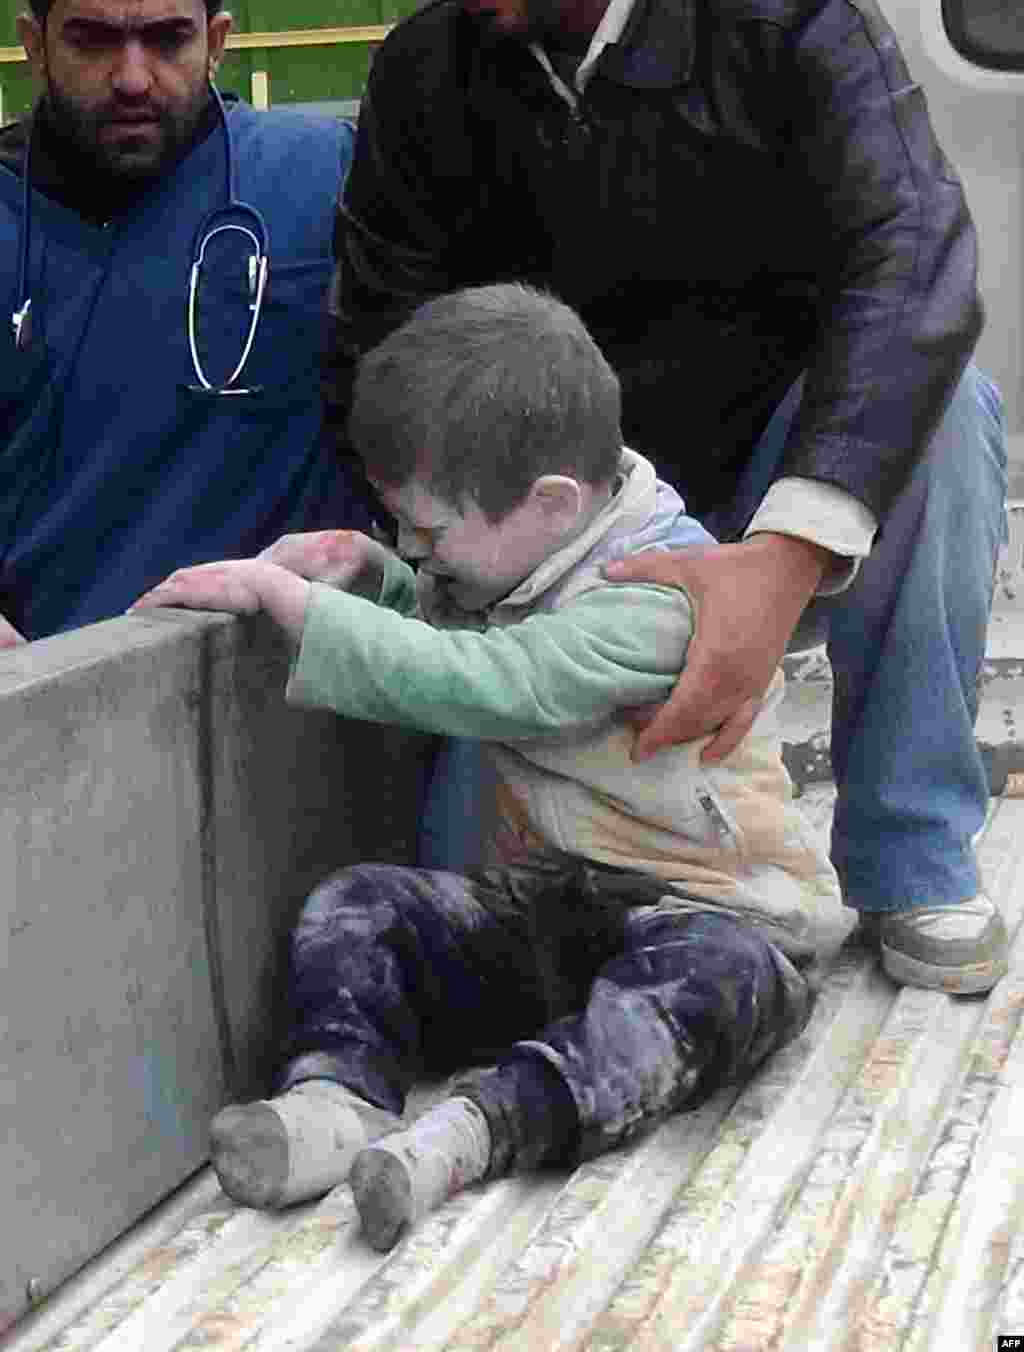 Syrians help an injured child following an alleged airstrike by government forces near a school in the northern city of Aleppo.